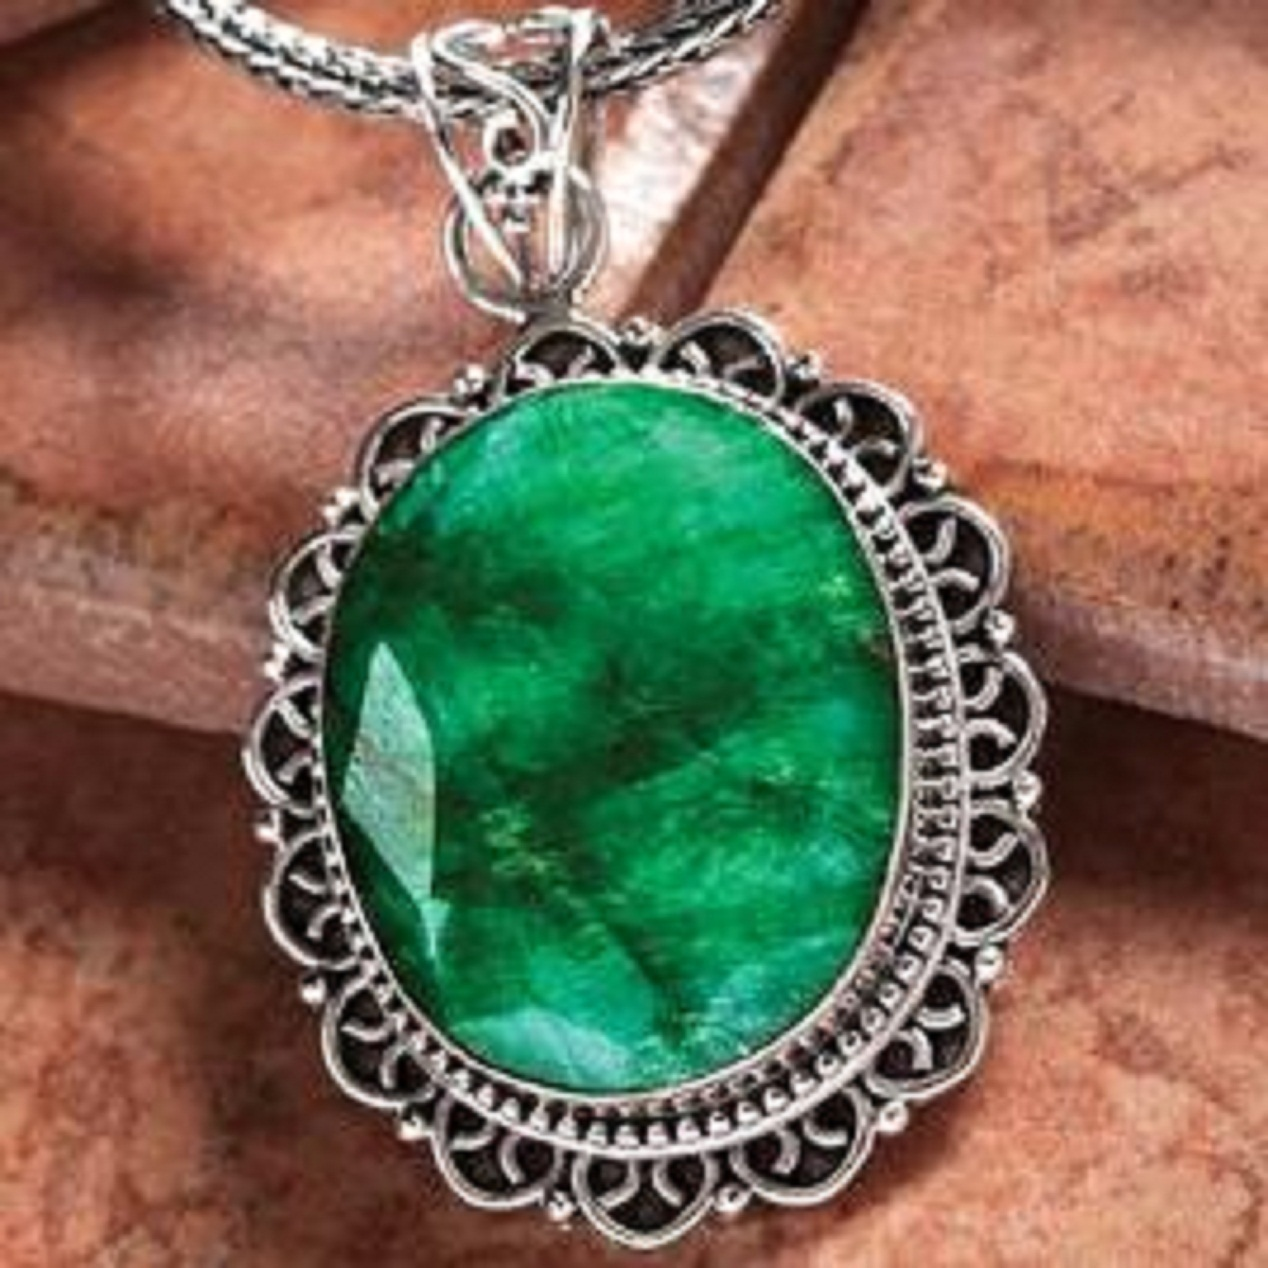 BEAUTIFUL EXQUISITE 50-ctw OVAL SHAPED EMERALD GREEN  PENDANT ON STERLING   SILV